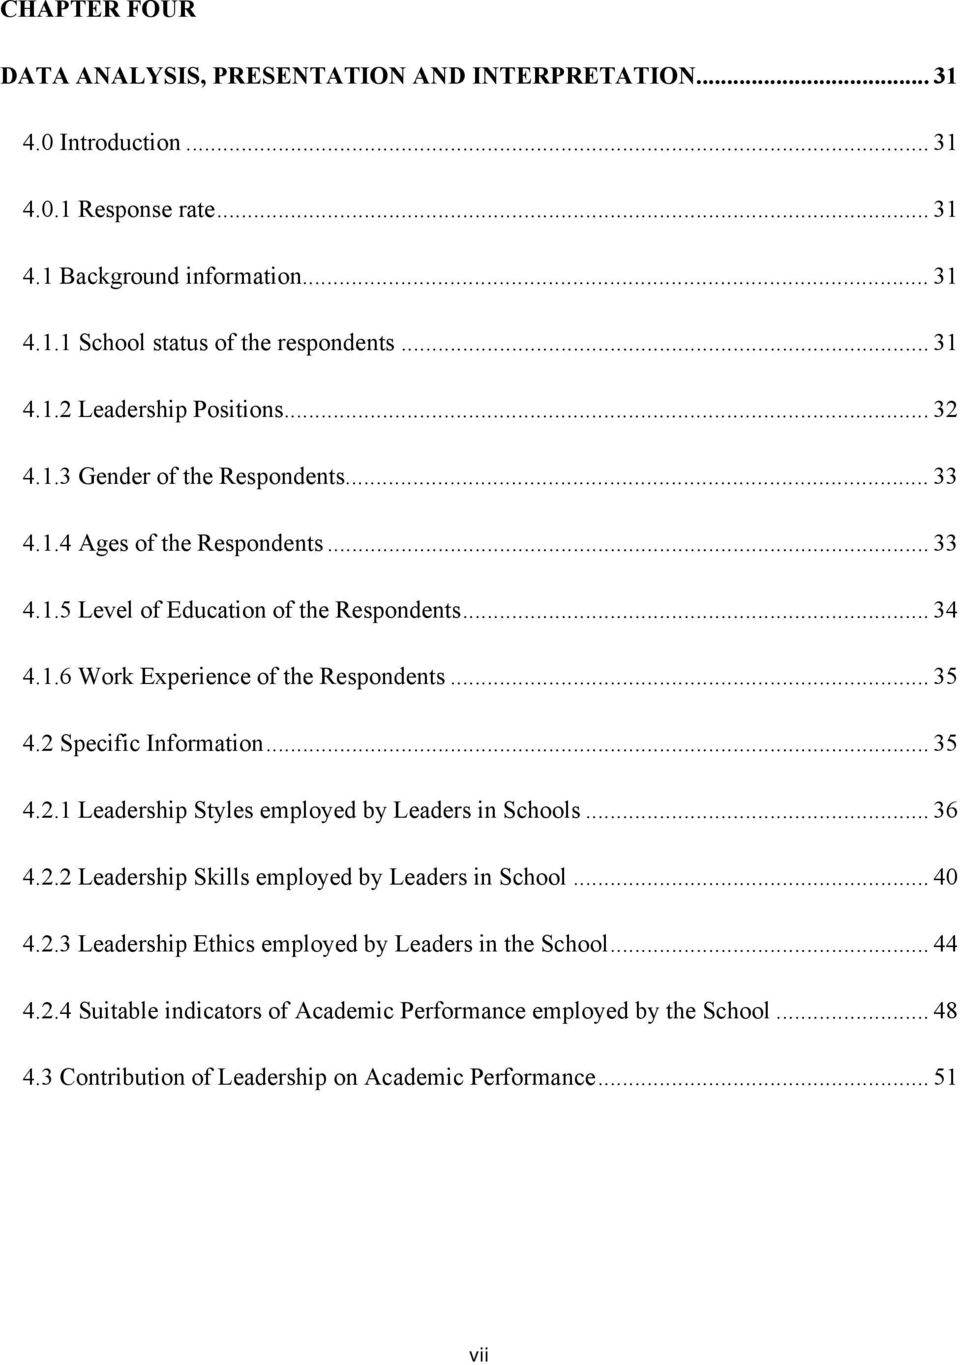 .. 35 4.2 Specific Information... 35 4.2.1 Leadership Styles employed by Leaders in Schools... 36 4.2.2 Leadership Skills employed by Leaders in School... 40 4.2.3 Leadership Ethics employed by Leaders in the School.